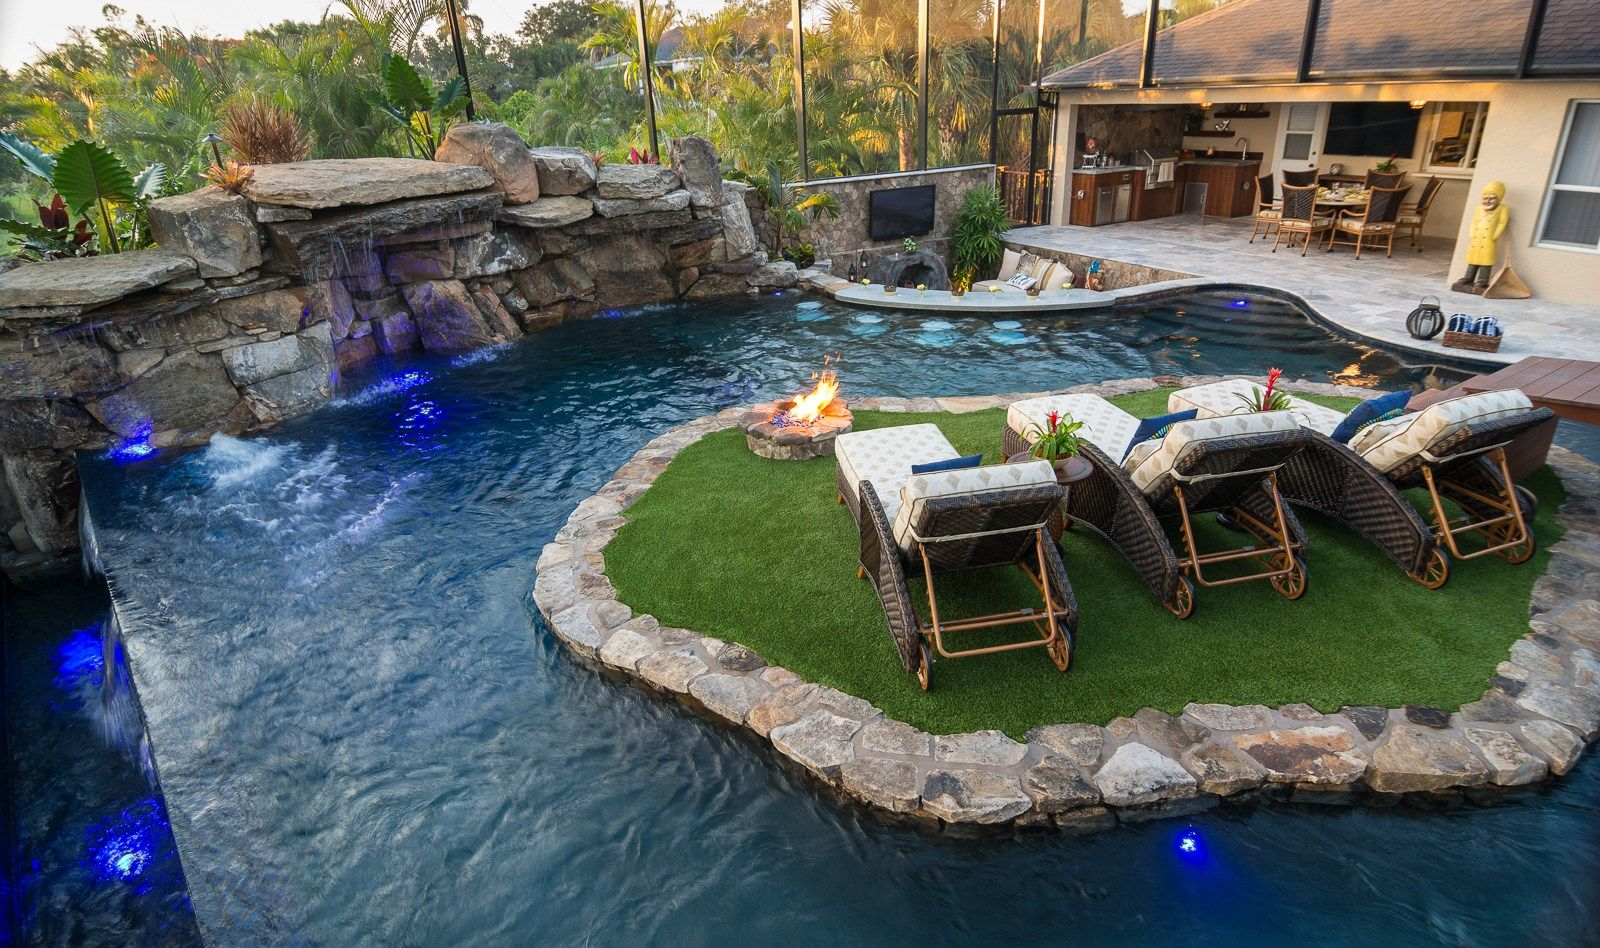 Lazy river lucas lagoons custom pool on pine island river - How long after pool shock before swim ...